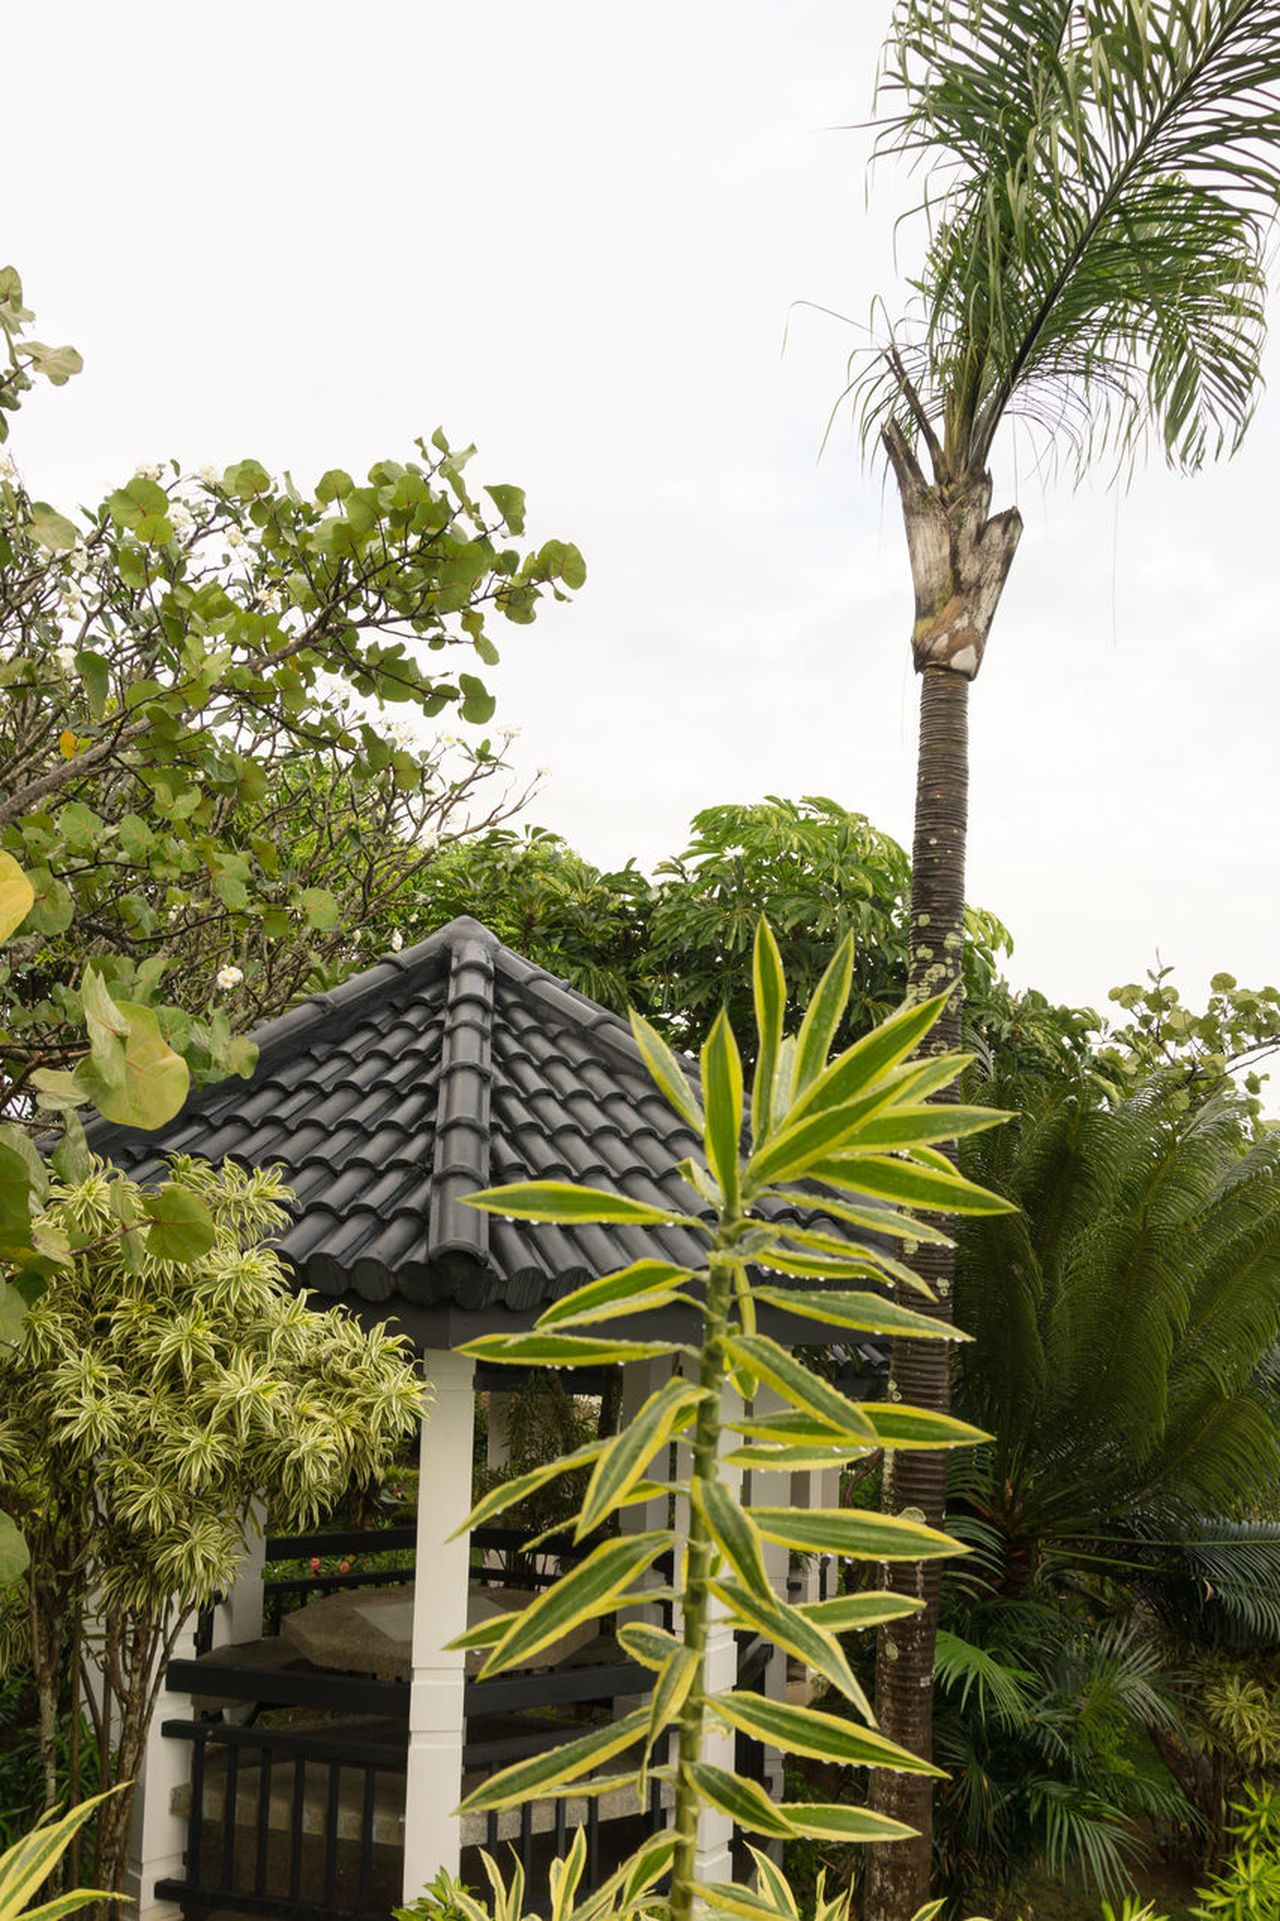 Swimming pool area in the Philippines, foliage. Buildings Foliage, Vegetation, Plants, Green, Leaves, Leafage, Undergrowth, Underbrush, Plant Life, Flora Outdoors Outside Palm Tree Palm Trees ❤❤ Philippines Photos Pool Roof Tops Swimming Pool